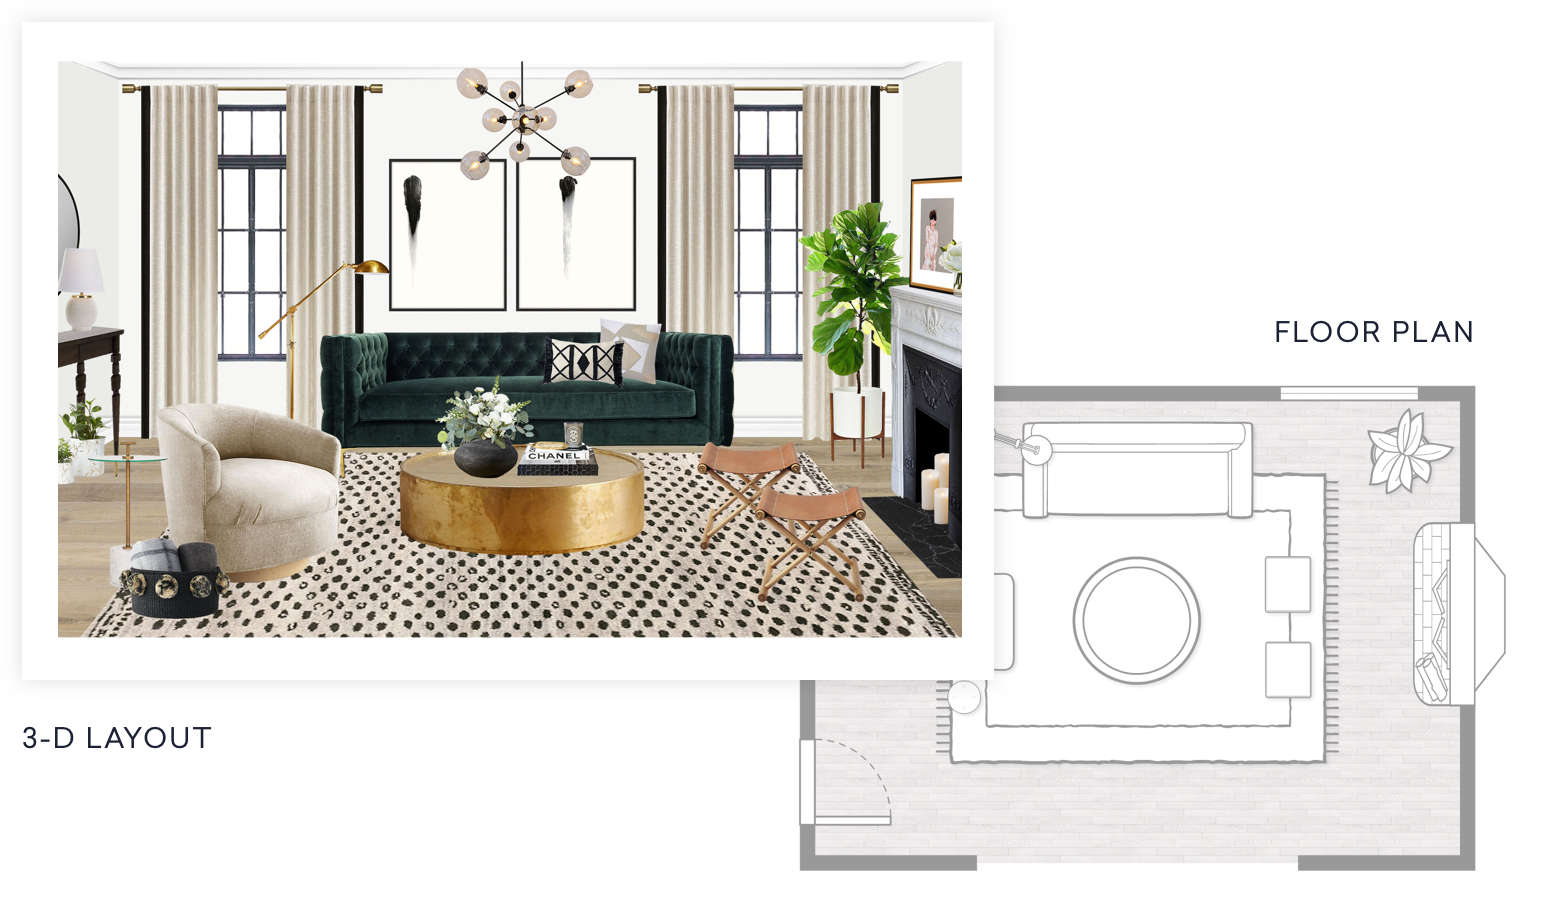 An example 3 D layout and floor plan built by an interior designer. Online Interior Design   Decorating Services   Havenly